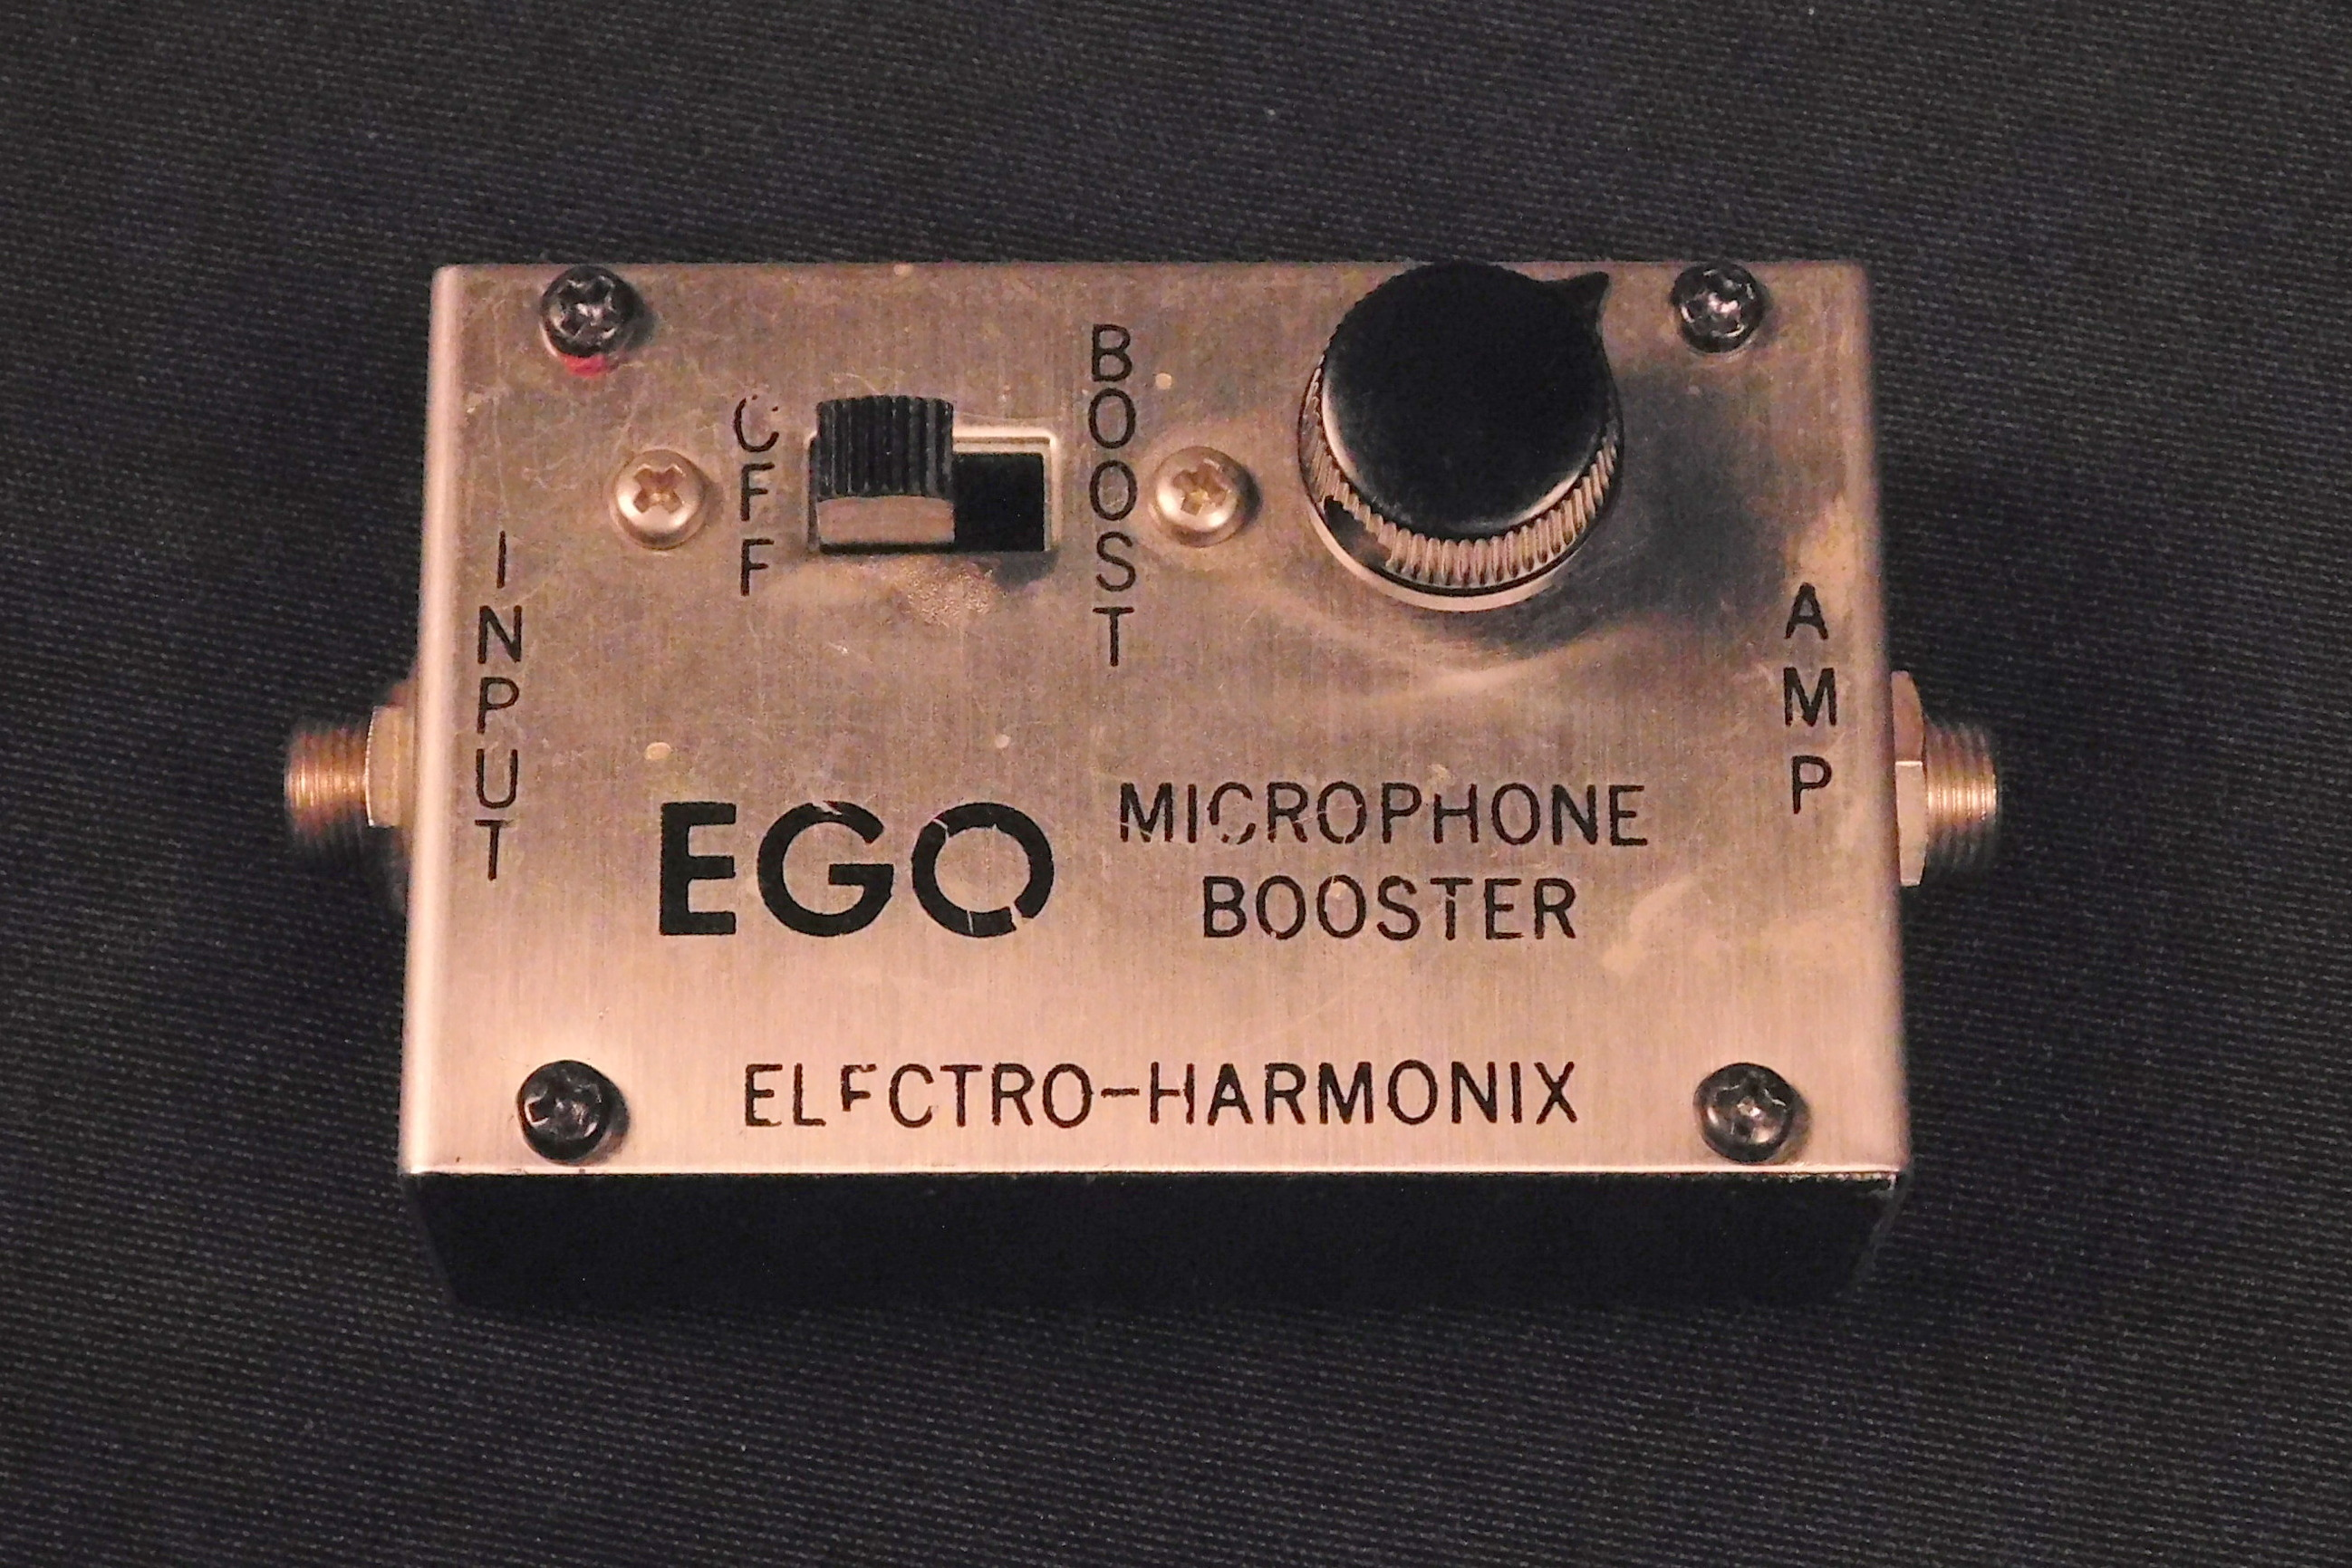 ELECTRO-HARMONIX EGO MICROPHONE BOOSTER **VINTAGE** TESTED!